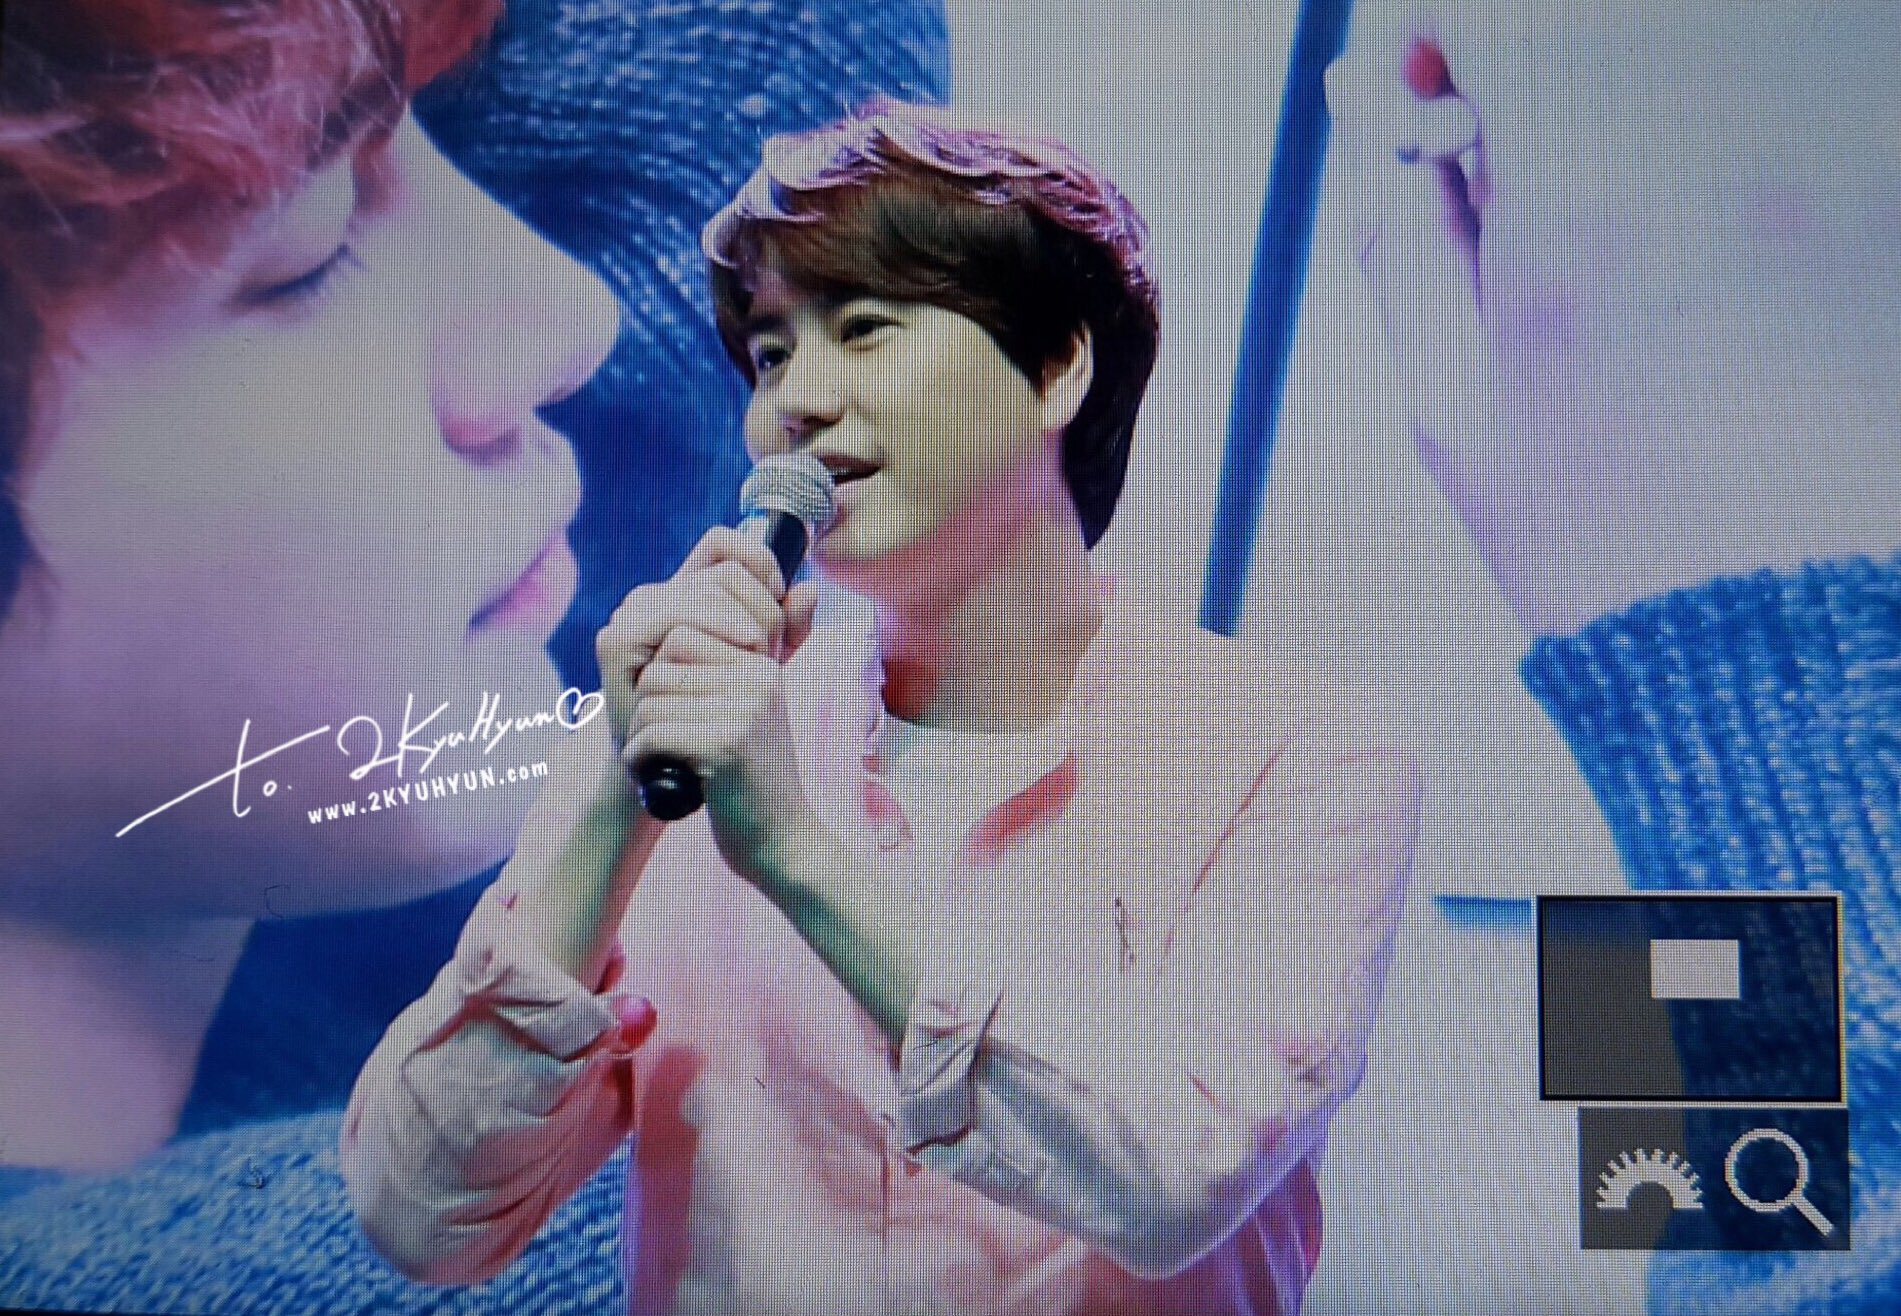 170318 #Kyuhyun at Press conference and Fansign Event in Thailand :) (3) cr. @2kyuhyun https://t.co/bJHAPXEjfd